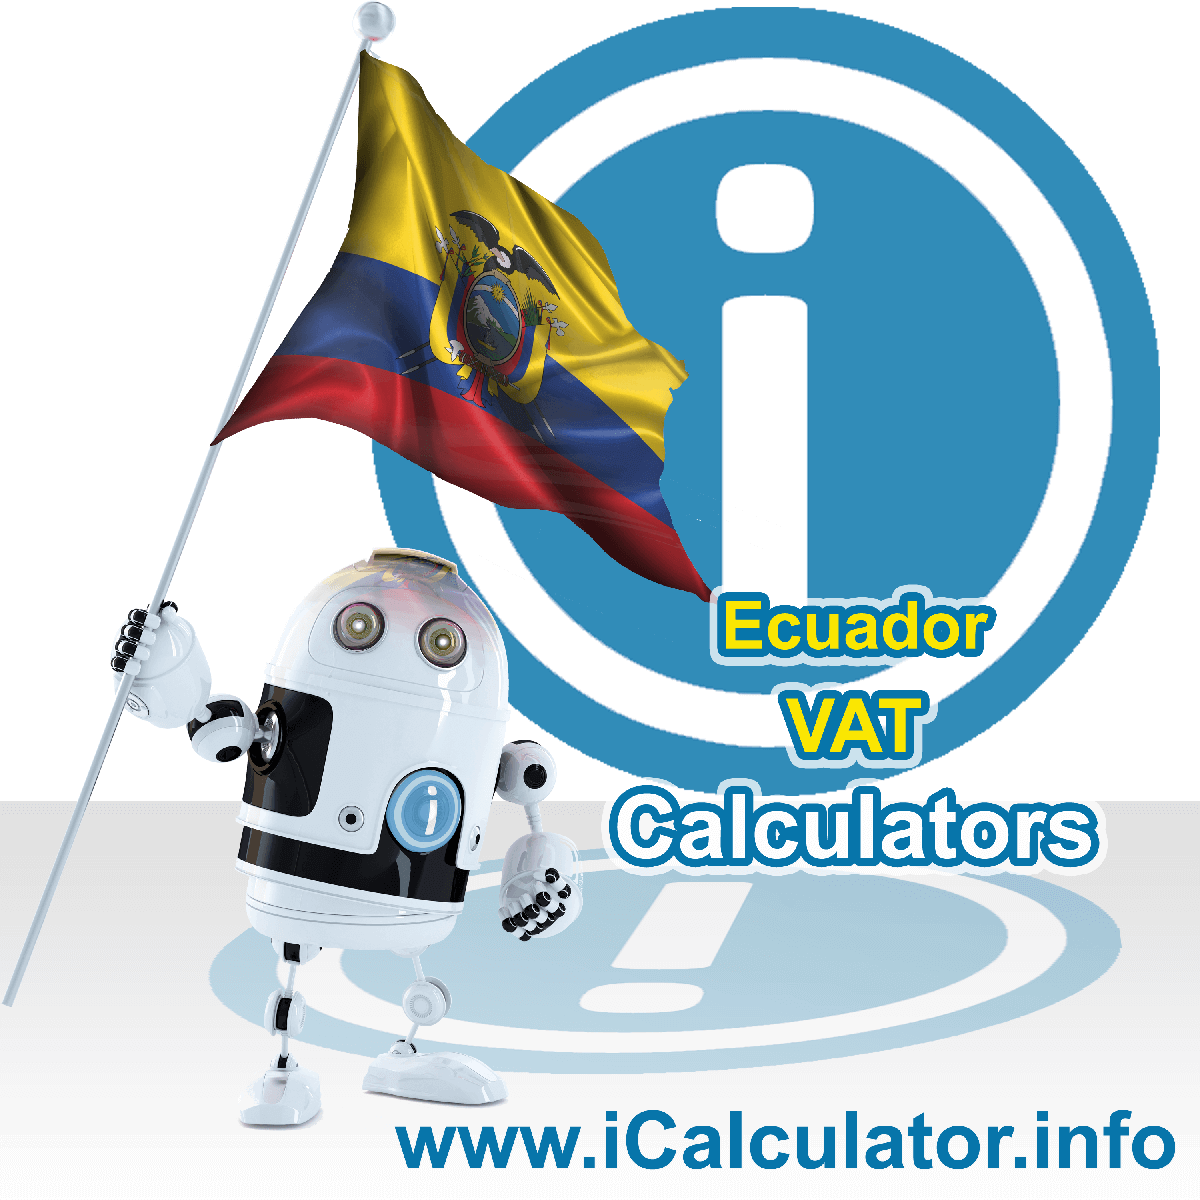 Ecuador VAT Calculator. This image shows the Ecuador flag and information relating to the VAT formula used for calculating Value Added Tax in Ecuador using the Ecuador VAT Calculator in 2020